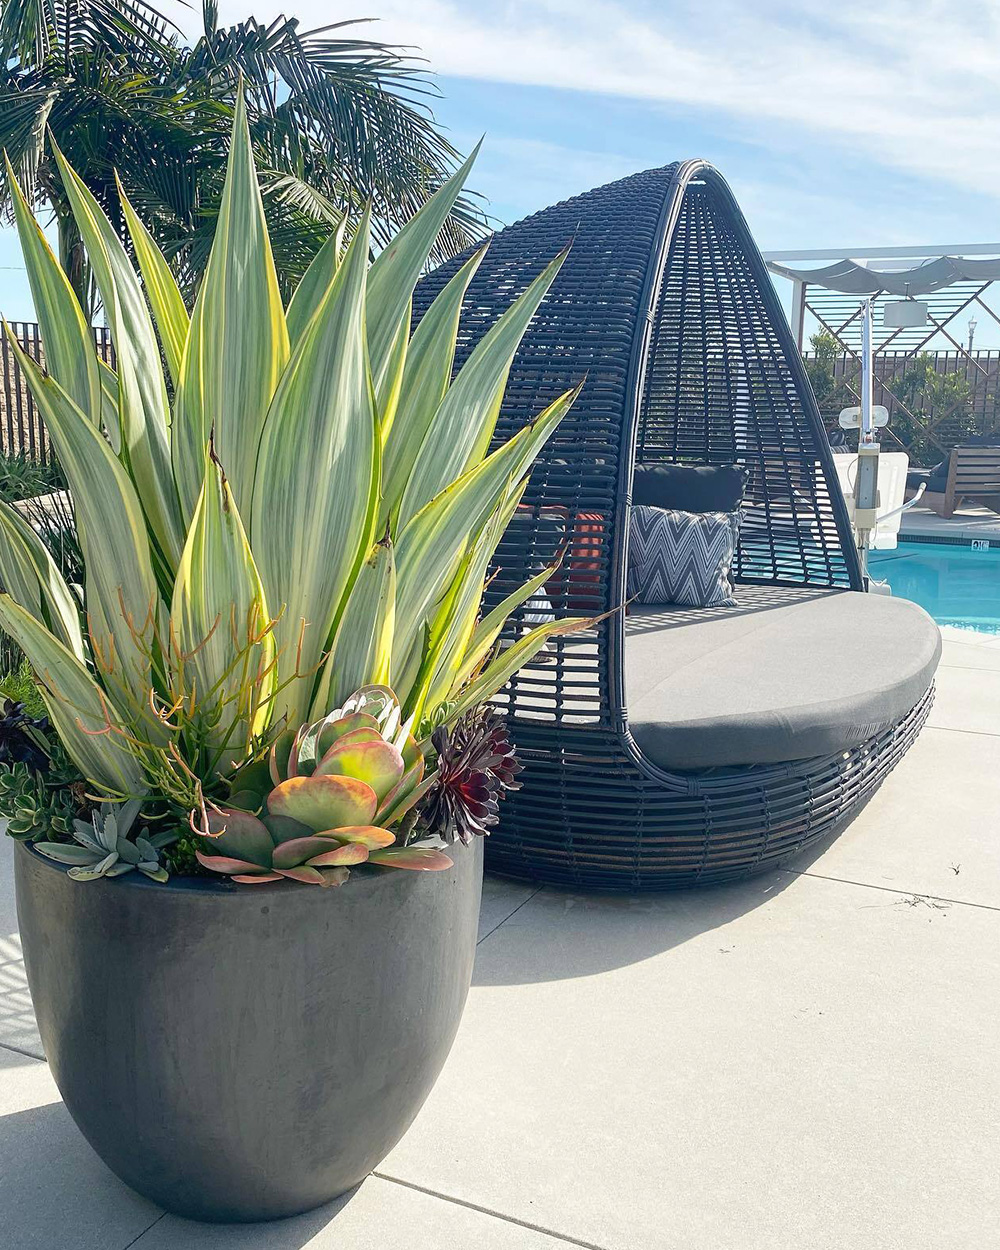 Succulents and poolside furniture